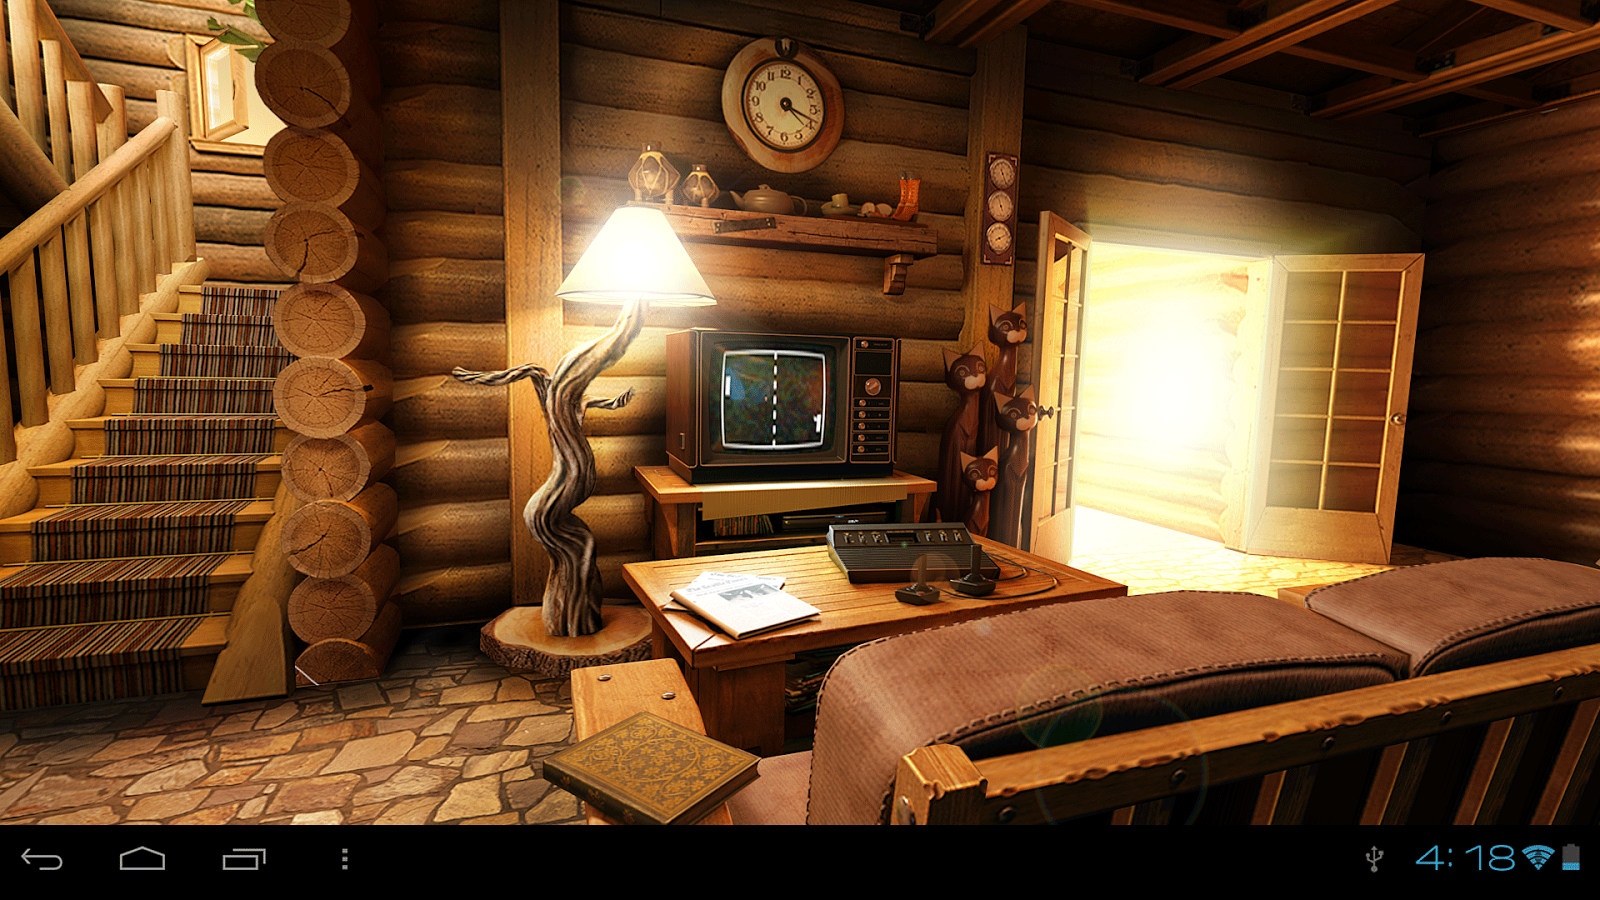 My Log Home 3D wallpaper FREE   Android Apps on Google Play 1600x900